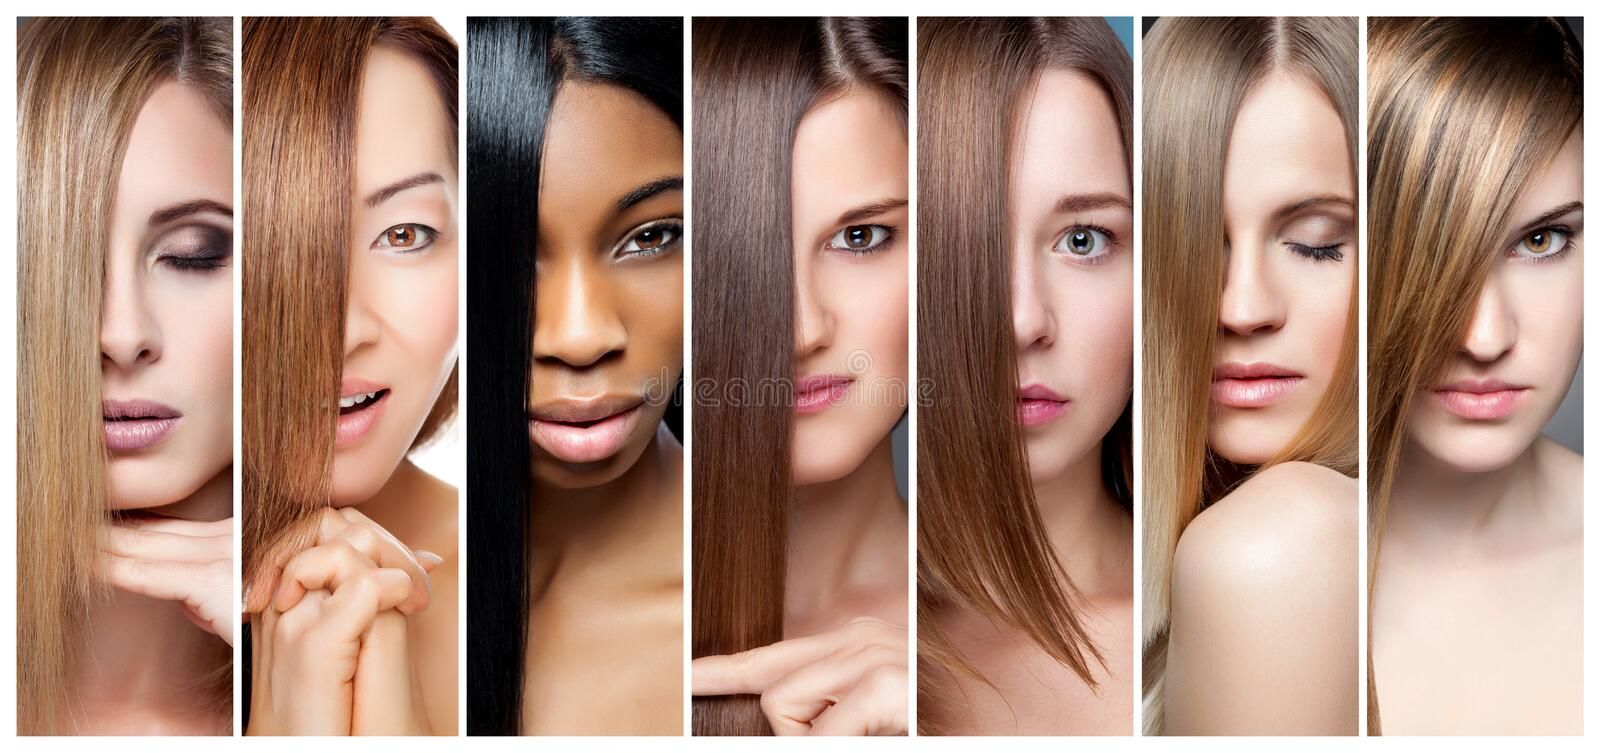 Collage of women with various hair color, skin tone and complexion stock images